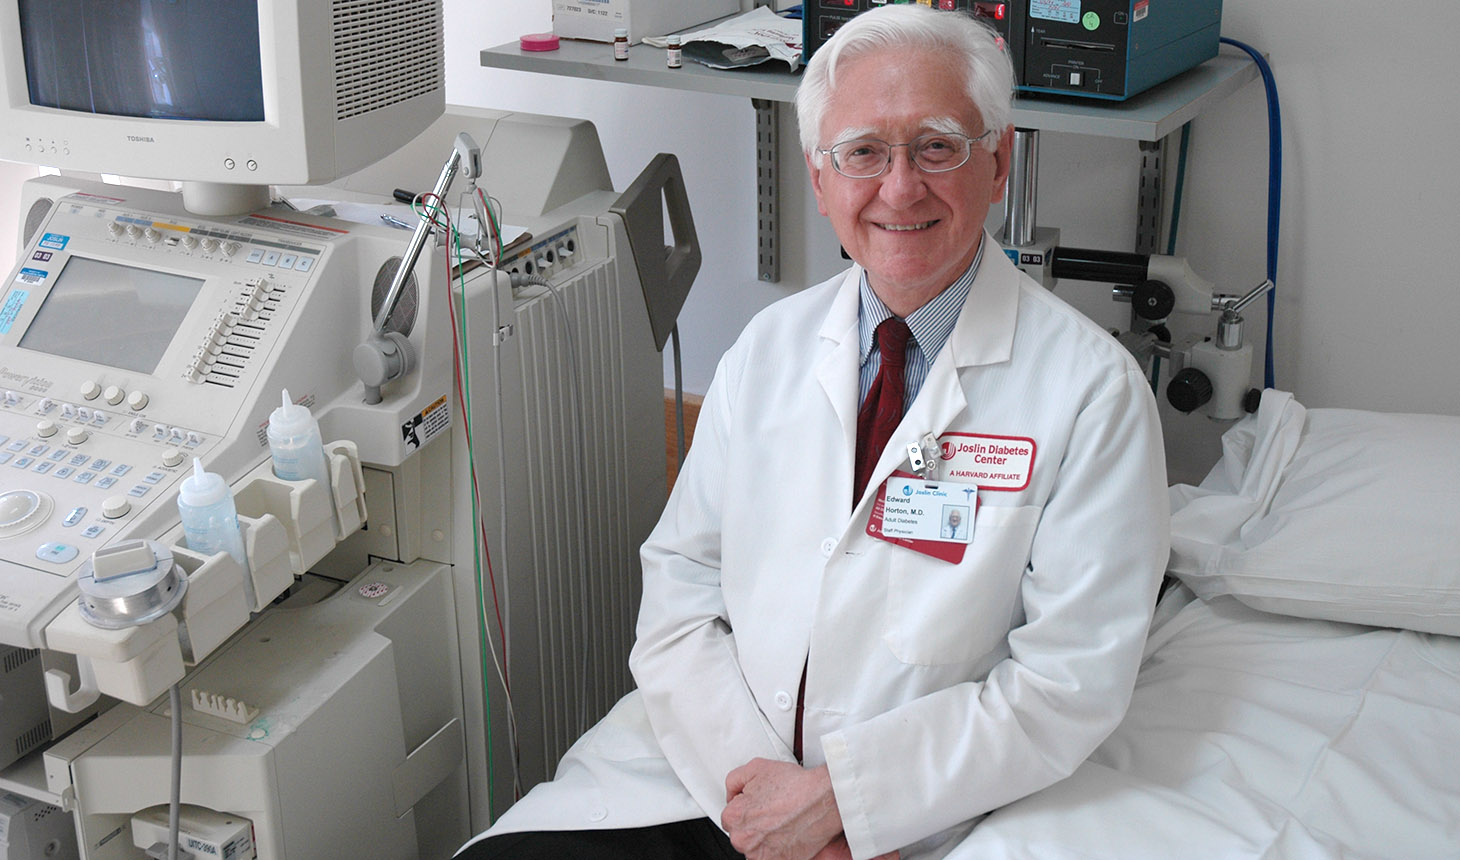 Dr. Edward Horton at the Joslin Diabetes Center in Boston, Mass.